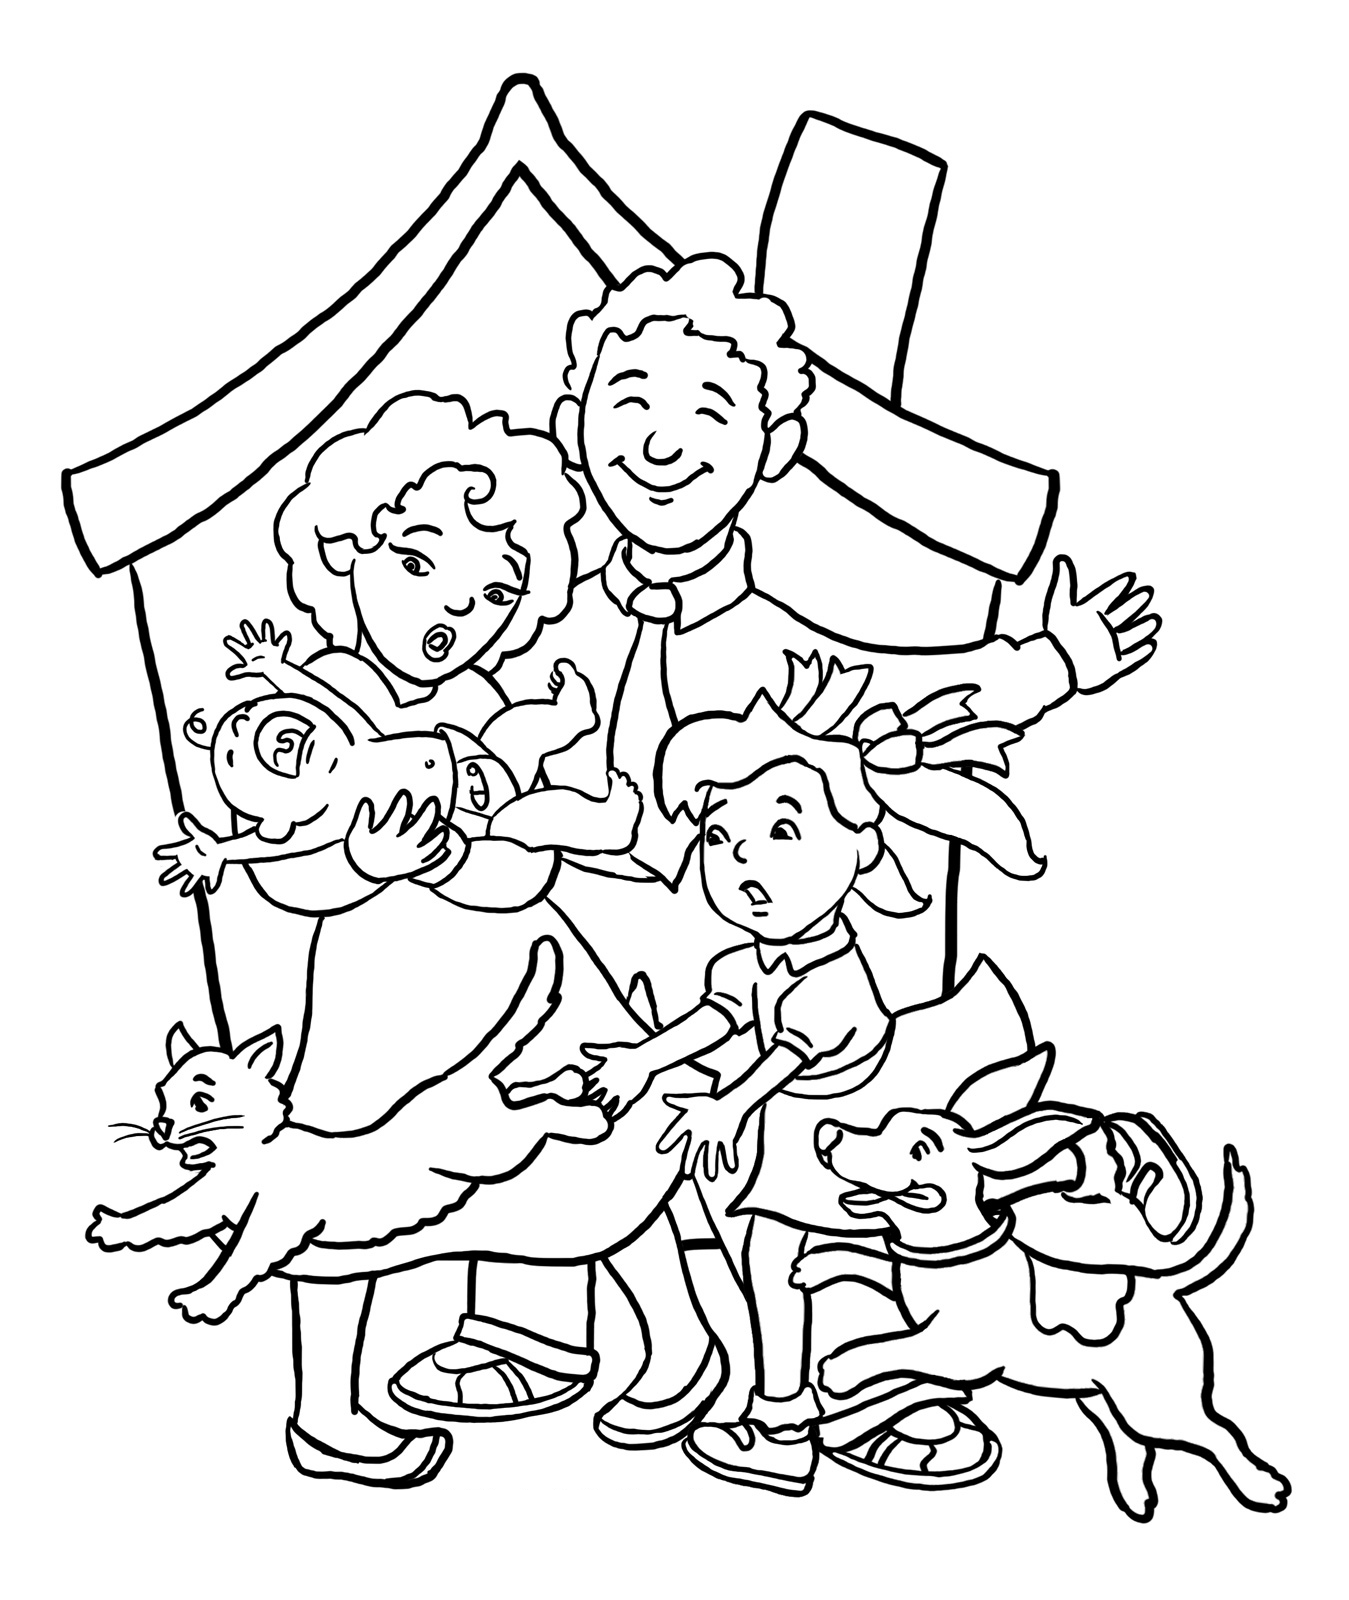 Family day coloring pages ~ colouring pages family - Google Search | ADVENT for church ...